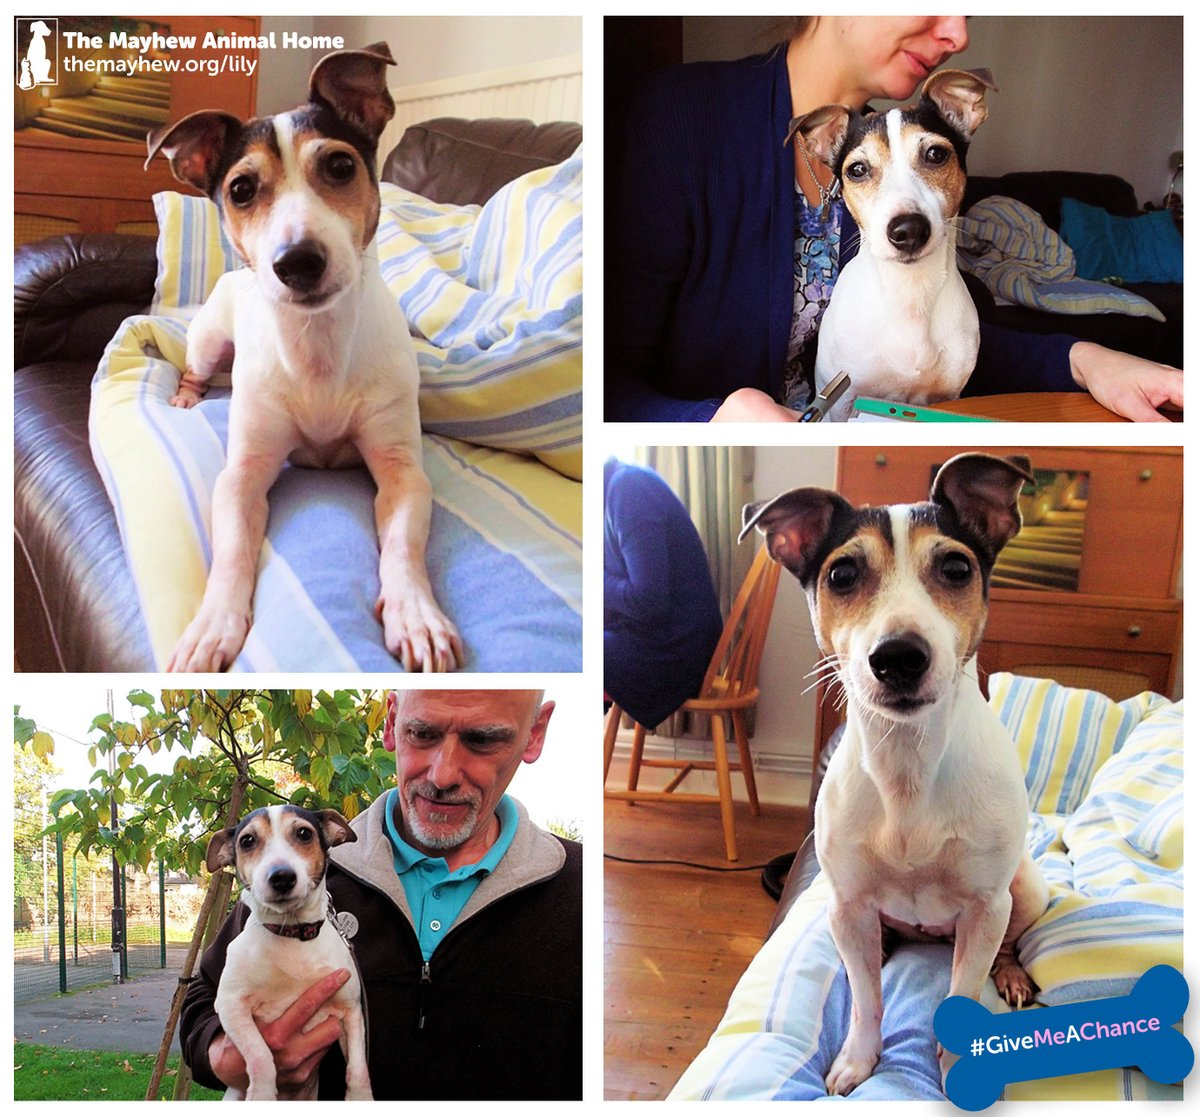 Lily is ever such a friendly girl- could you welcome her into your life? https://t.co/dObYB1PcQl #adoptdontshop https://t.co/4BAWK0z7e7